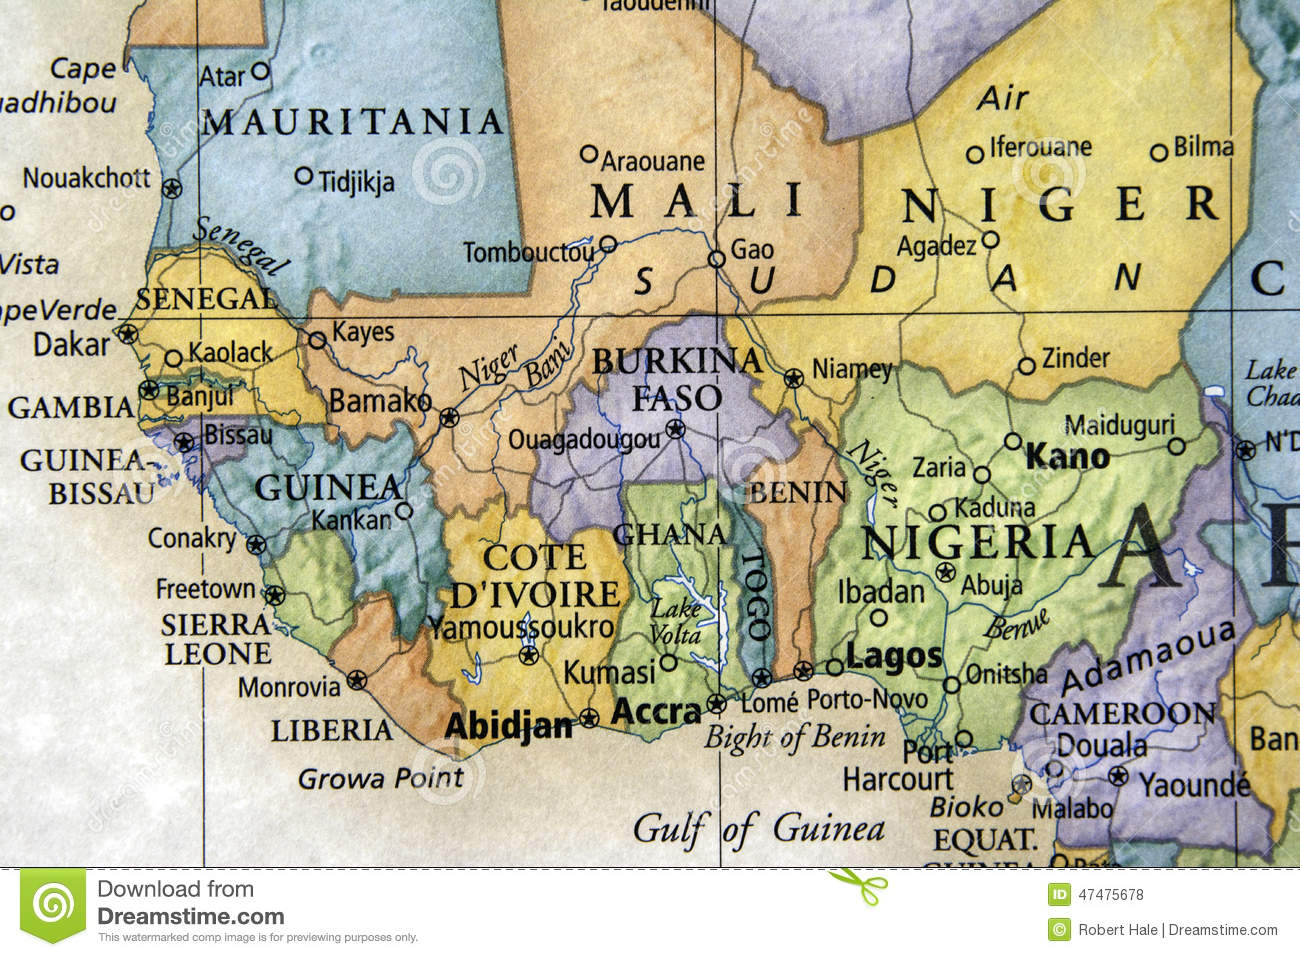 Map Of Africa And Surrounding Countries.West Africa Stock Photo Image Of Sick Death Guinea 47475678